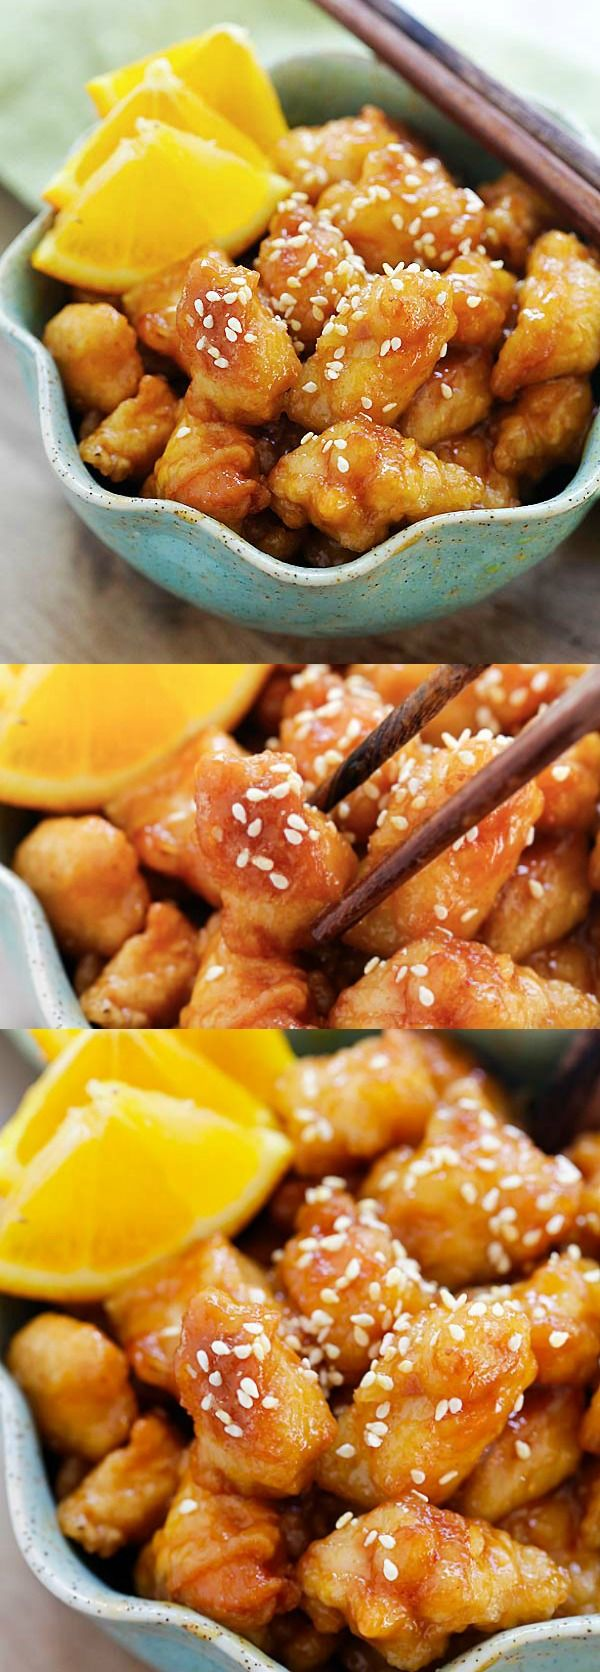 Orange chicken – easy homemade orange chicken recipe that takes 30 mins to make. It's healthier and much better than Panda Express and Chinese takeout | rasamalaysia.com